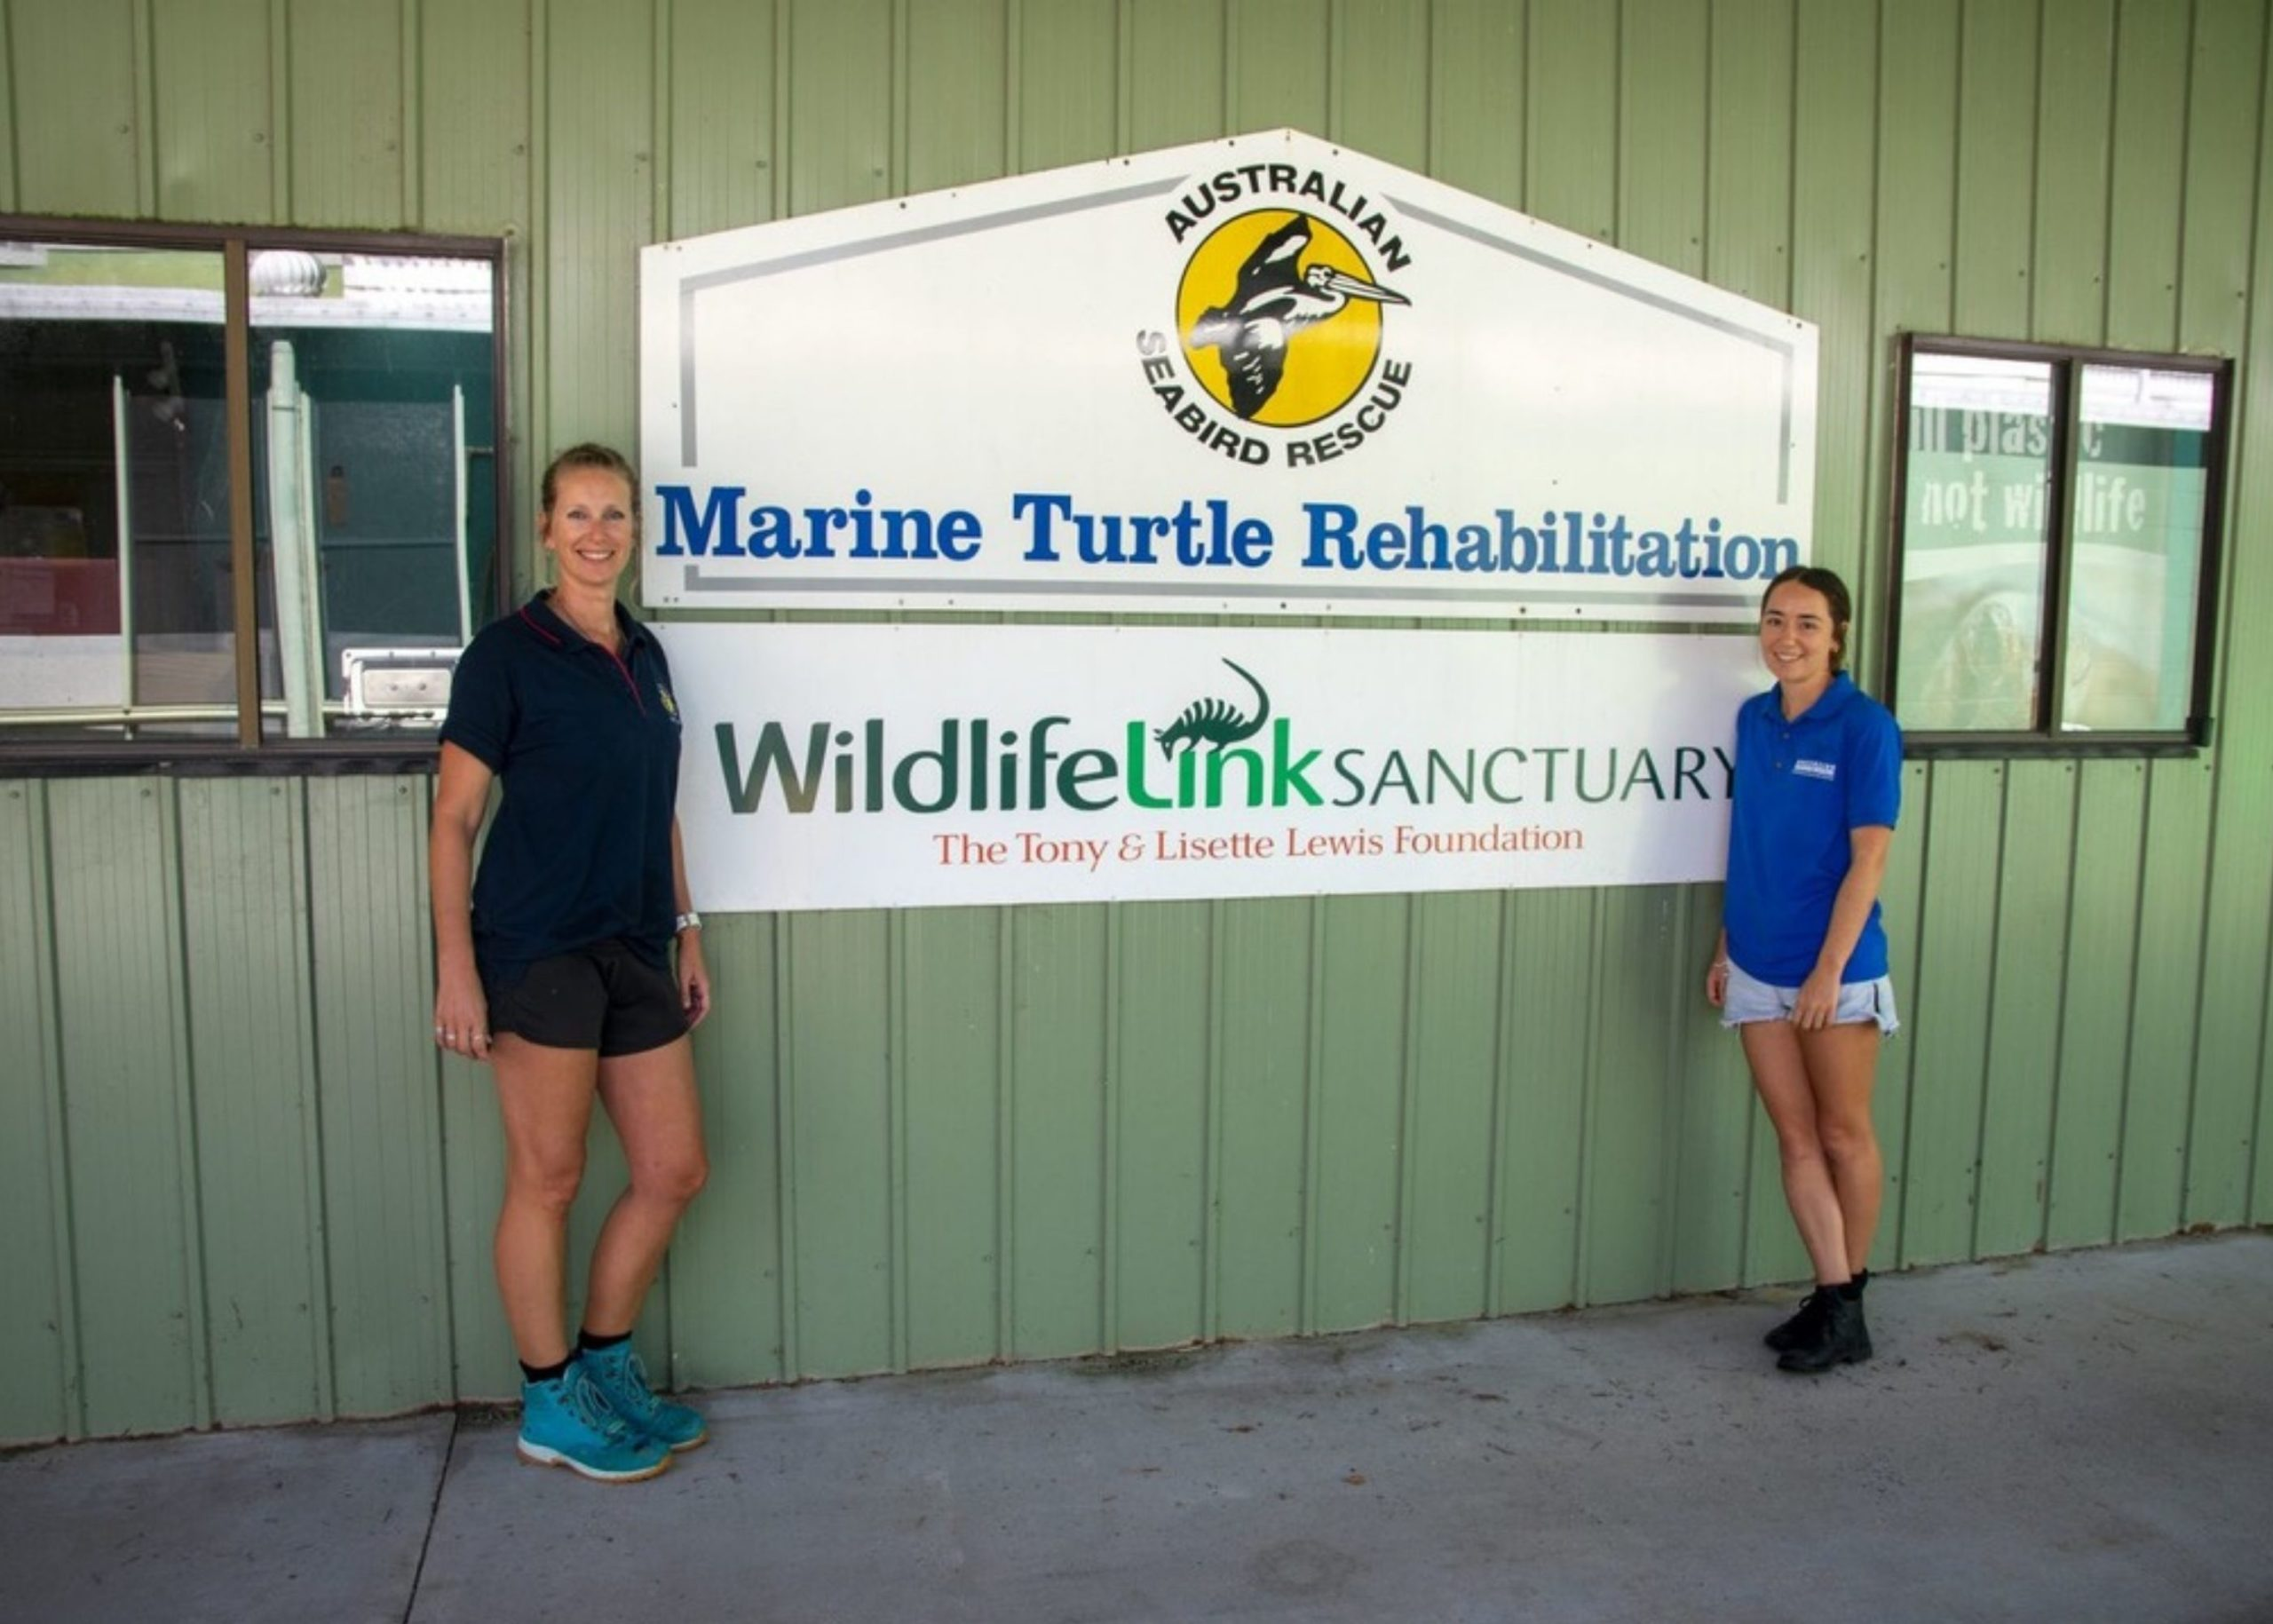 Outside view of the building from Australian Seabird Rescue